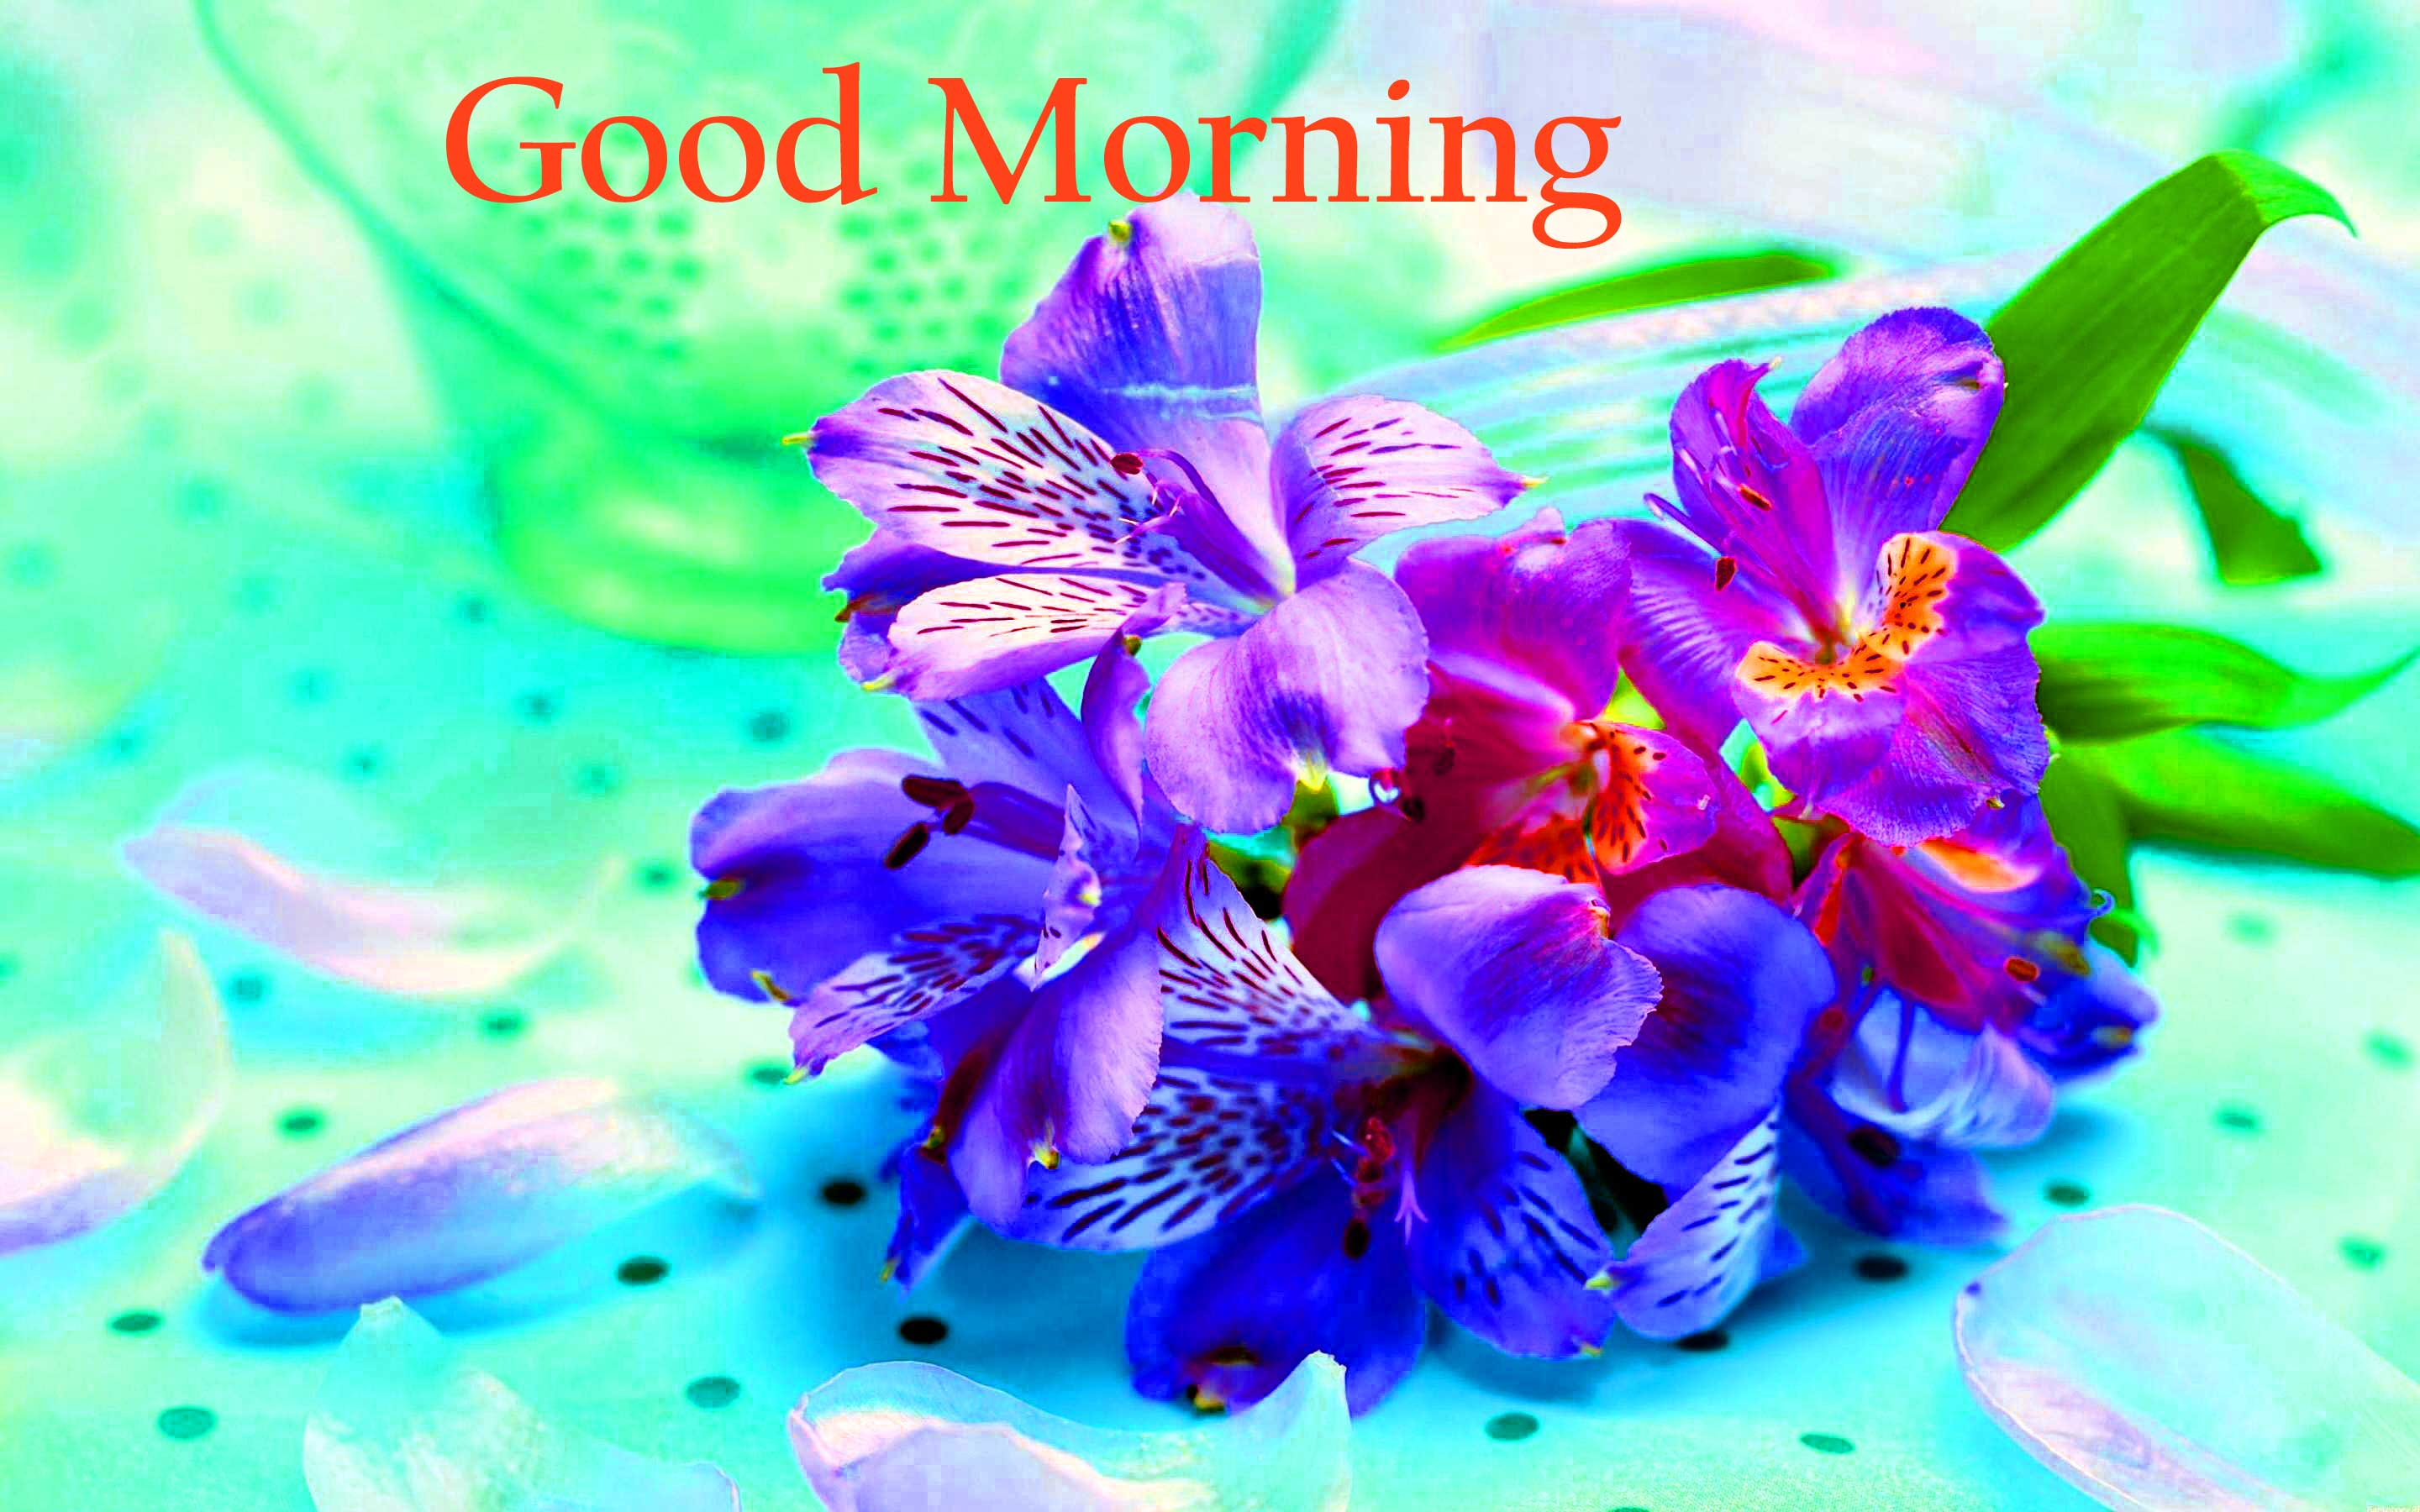 Good Morning Flowers Images Wallpaper Pics Download - Flower Good Morning Love Pictures For Whatsapp , HD Wallpaper & Backgrounds